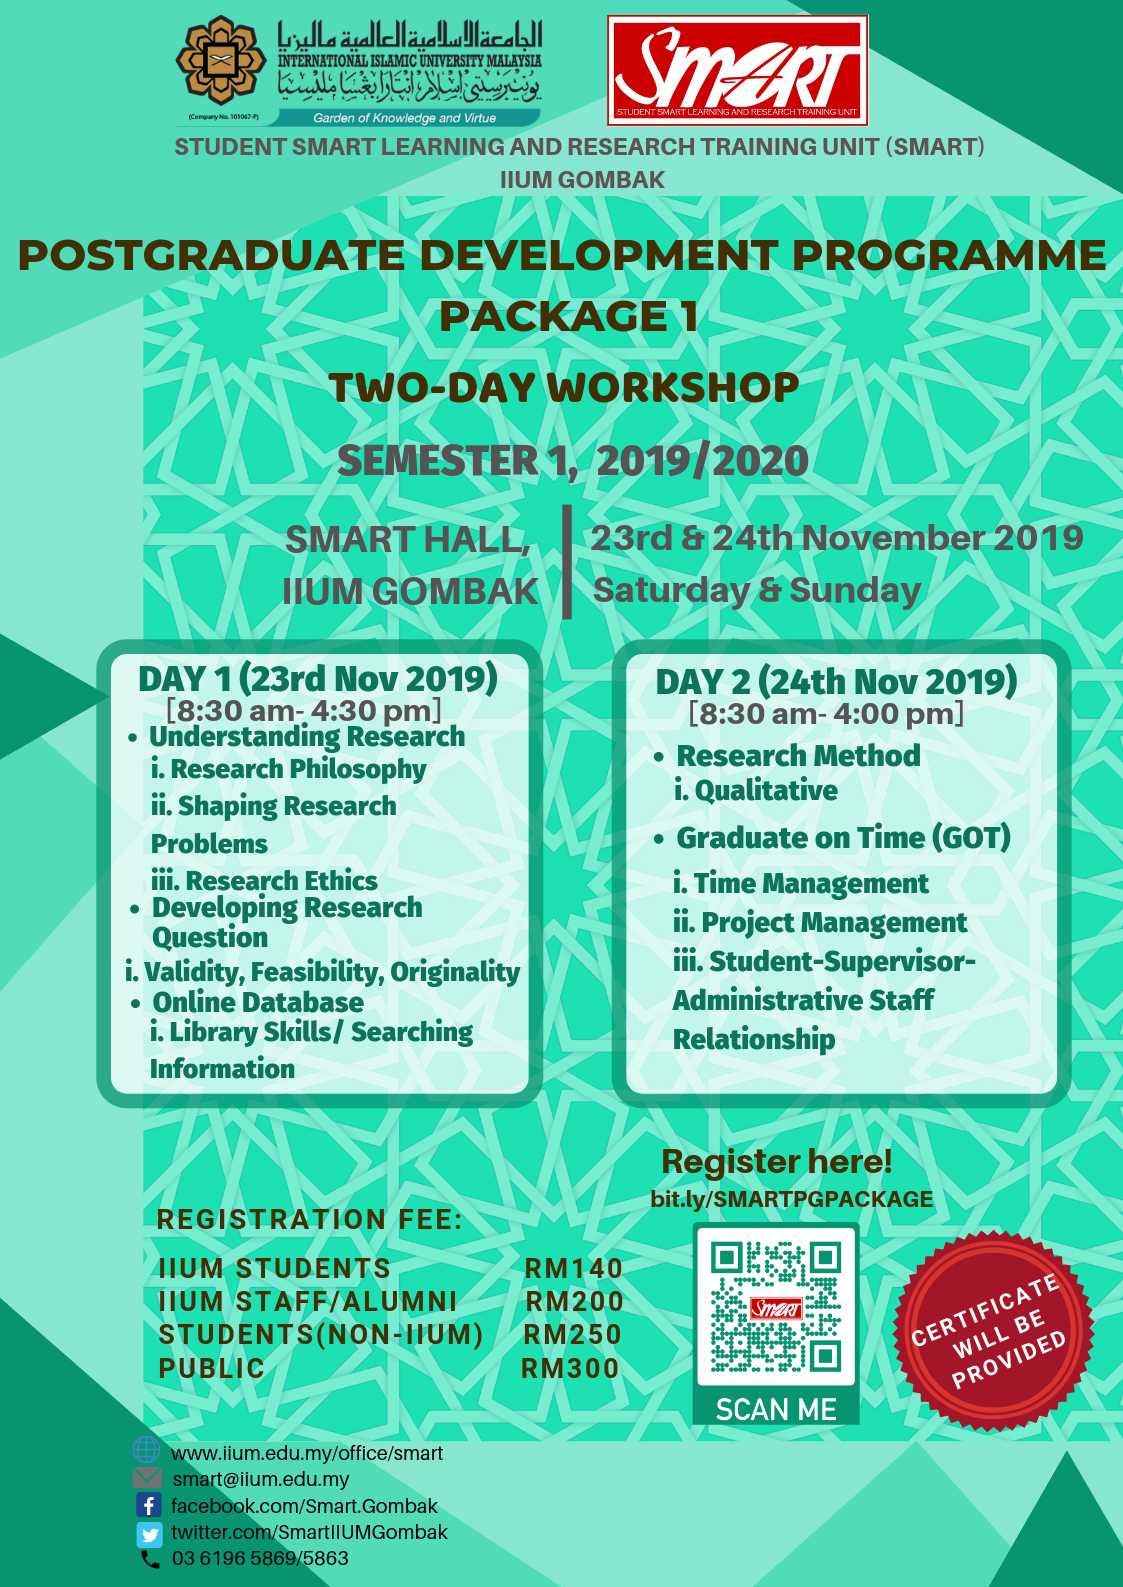 WORKSHOP : POSTGRADUATE DEVELOPMENT PROGRAMME PACKAGE 1